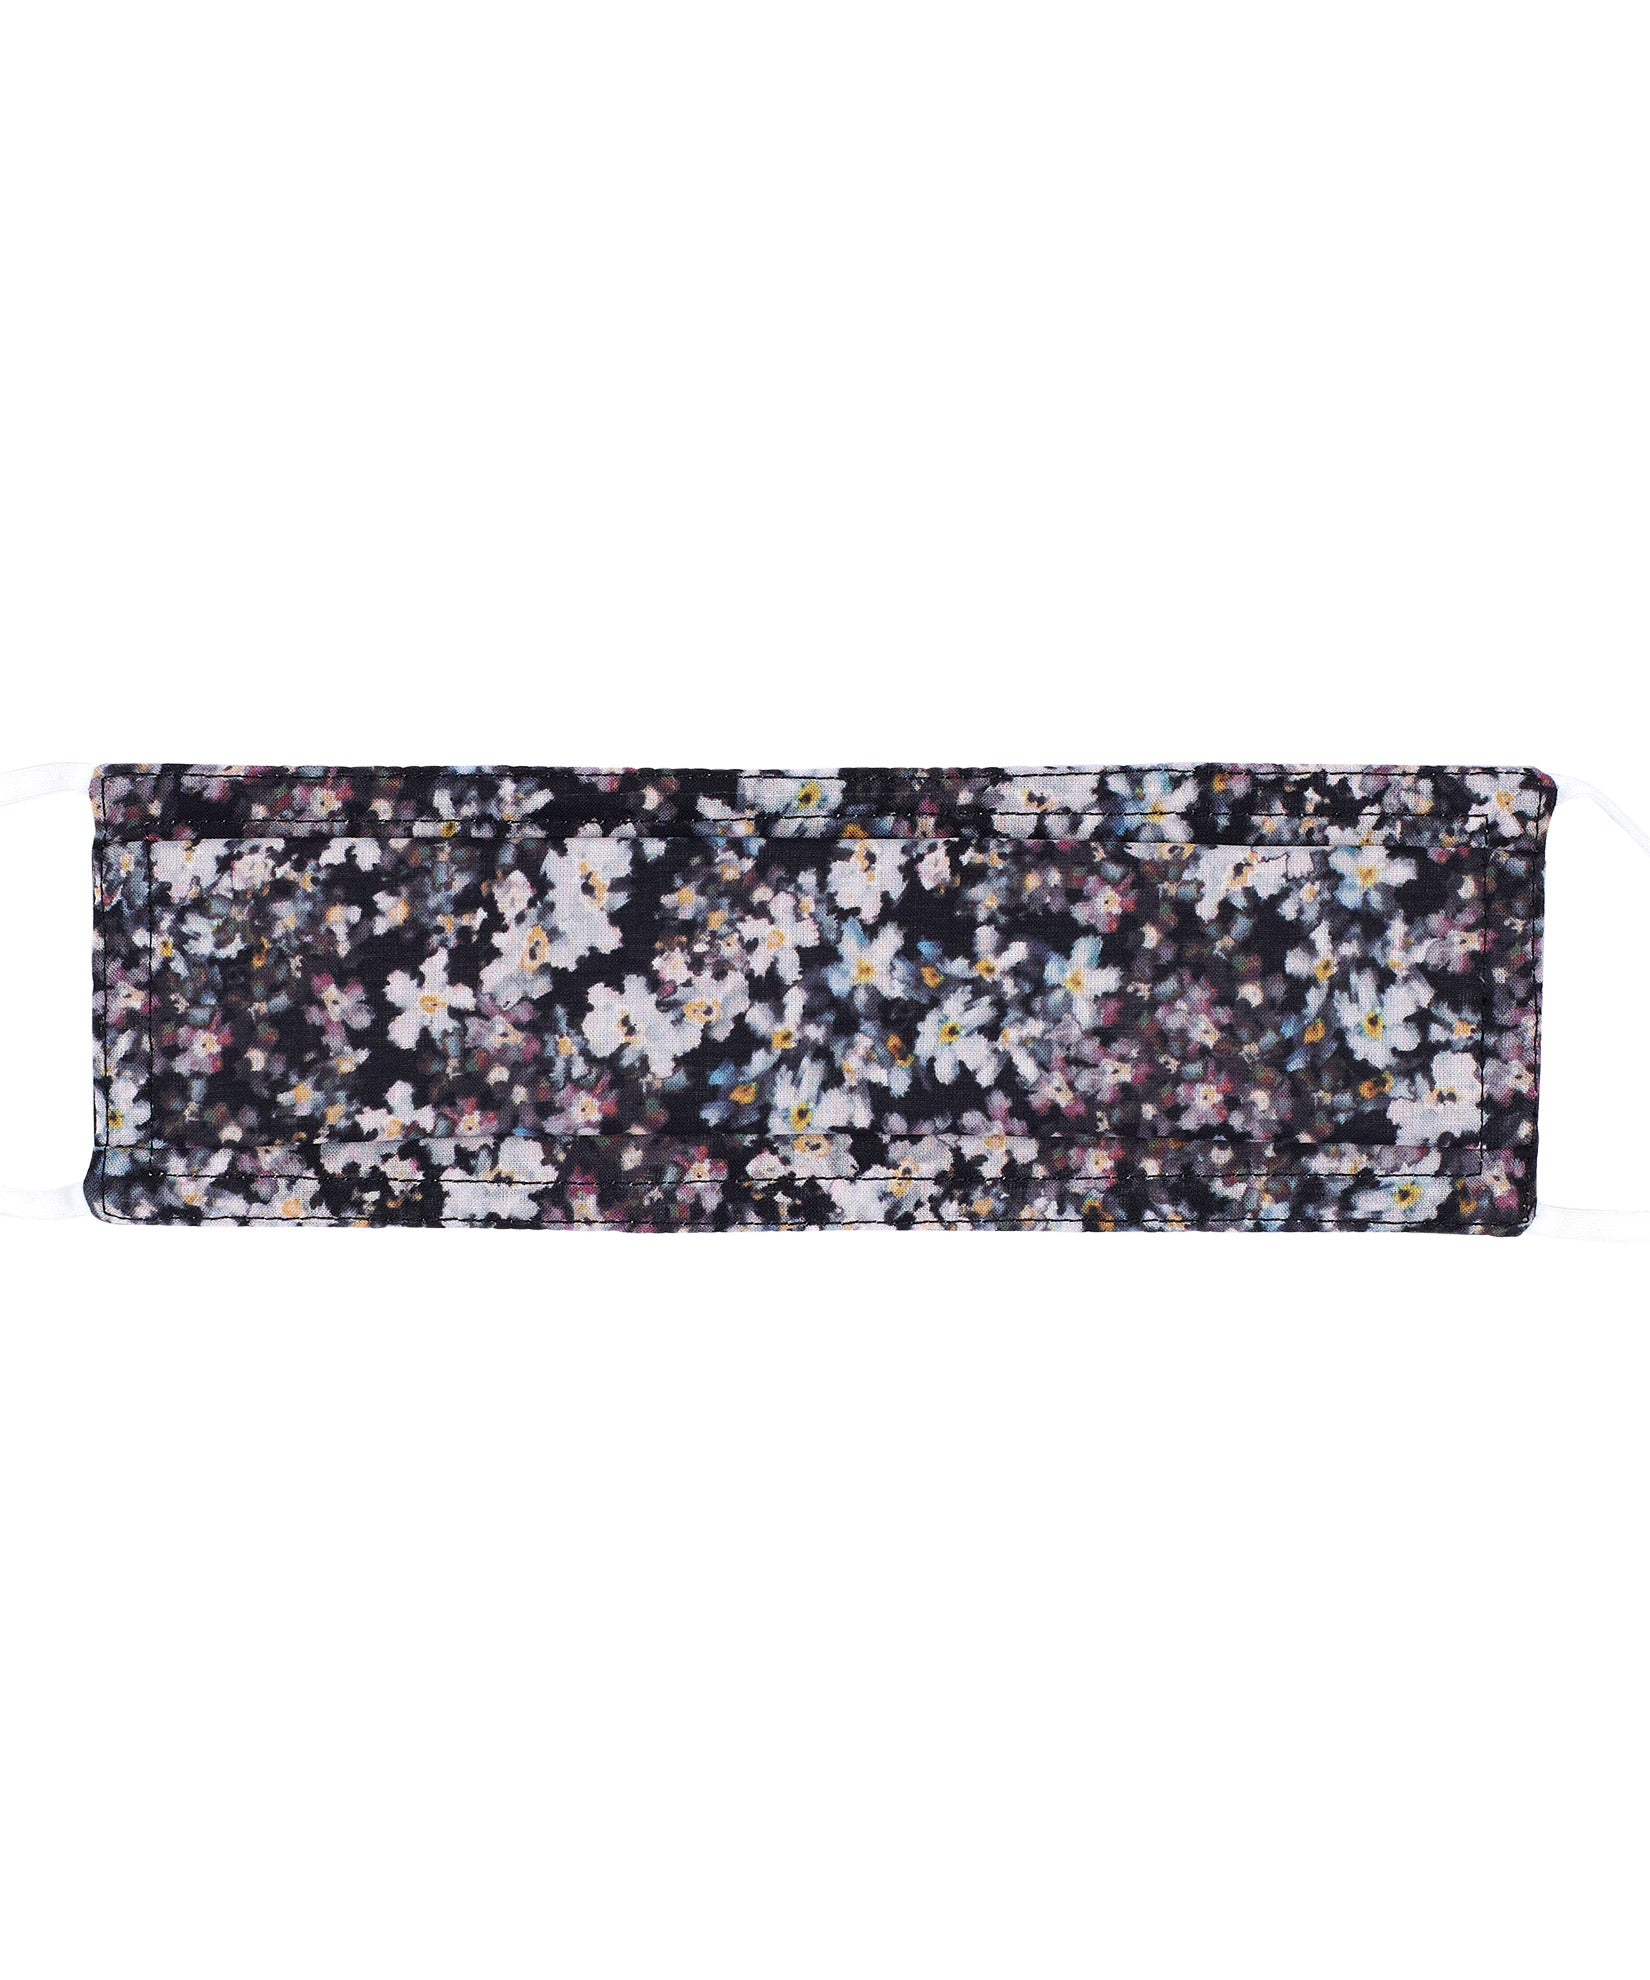 Black - Blurry Floral Cooling Mask